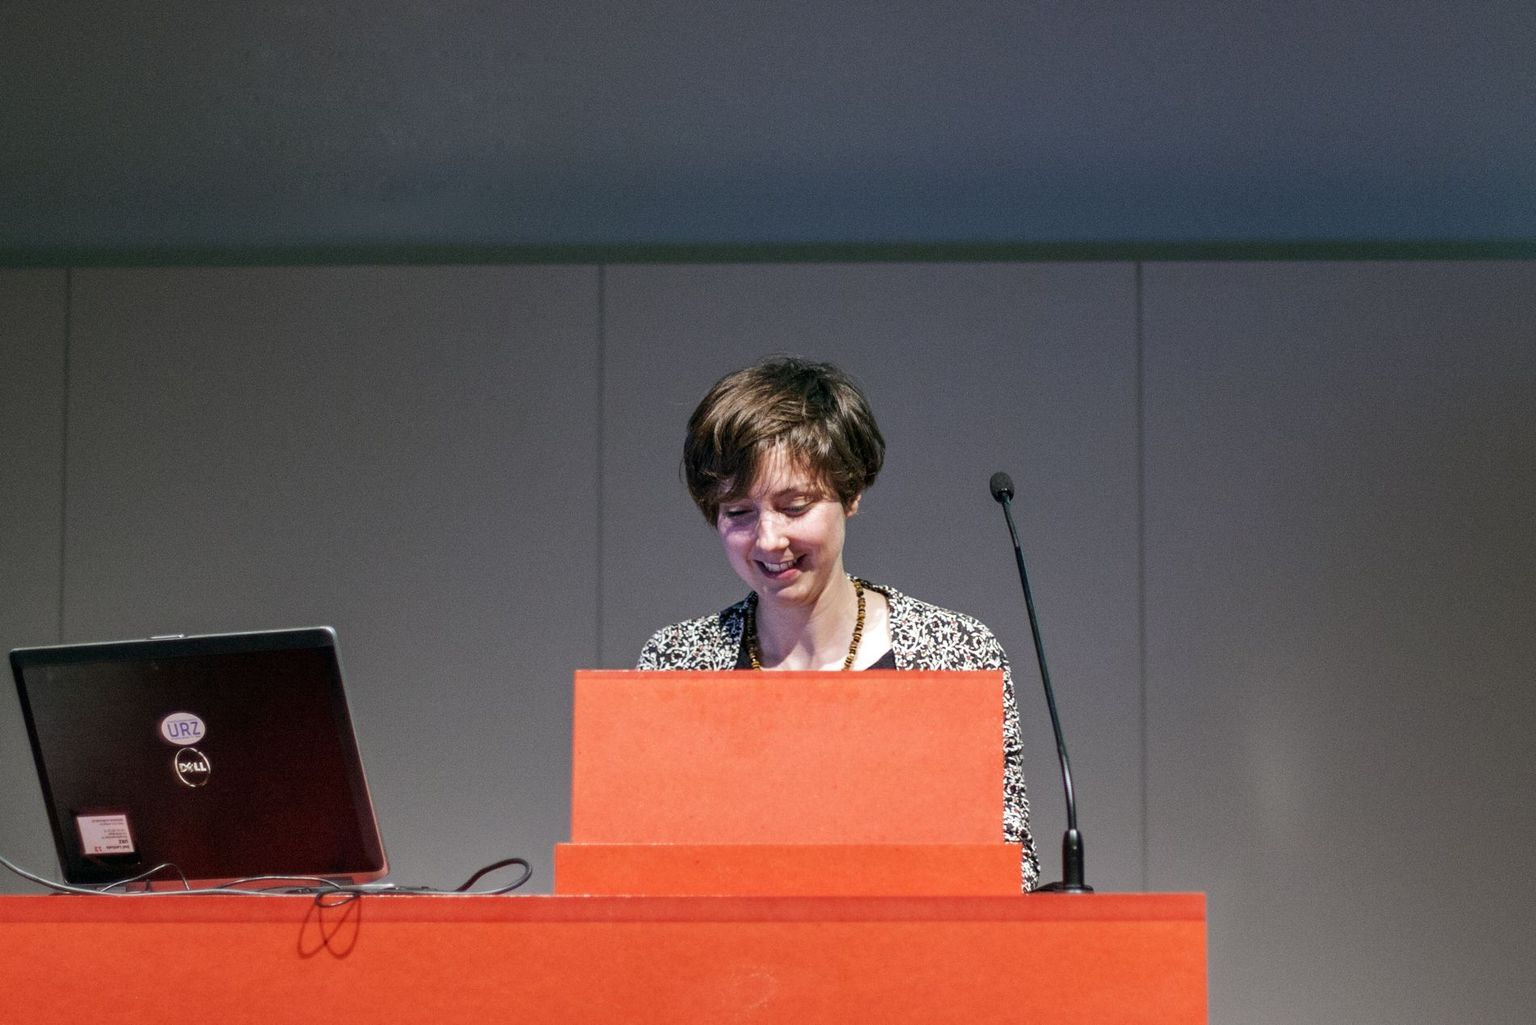 Anna Rauch receives the Swiss Geological Society Award 2015 for best MSc thesis